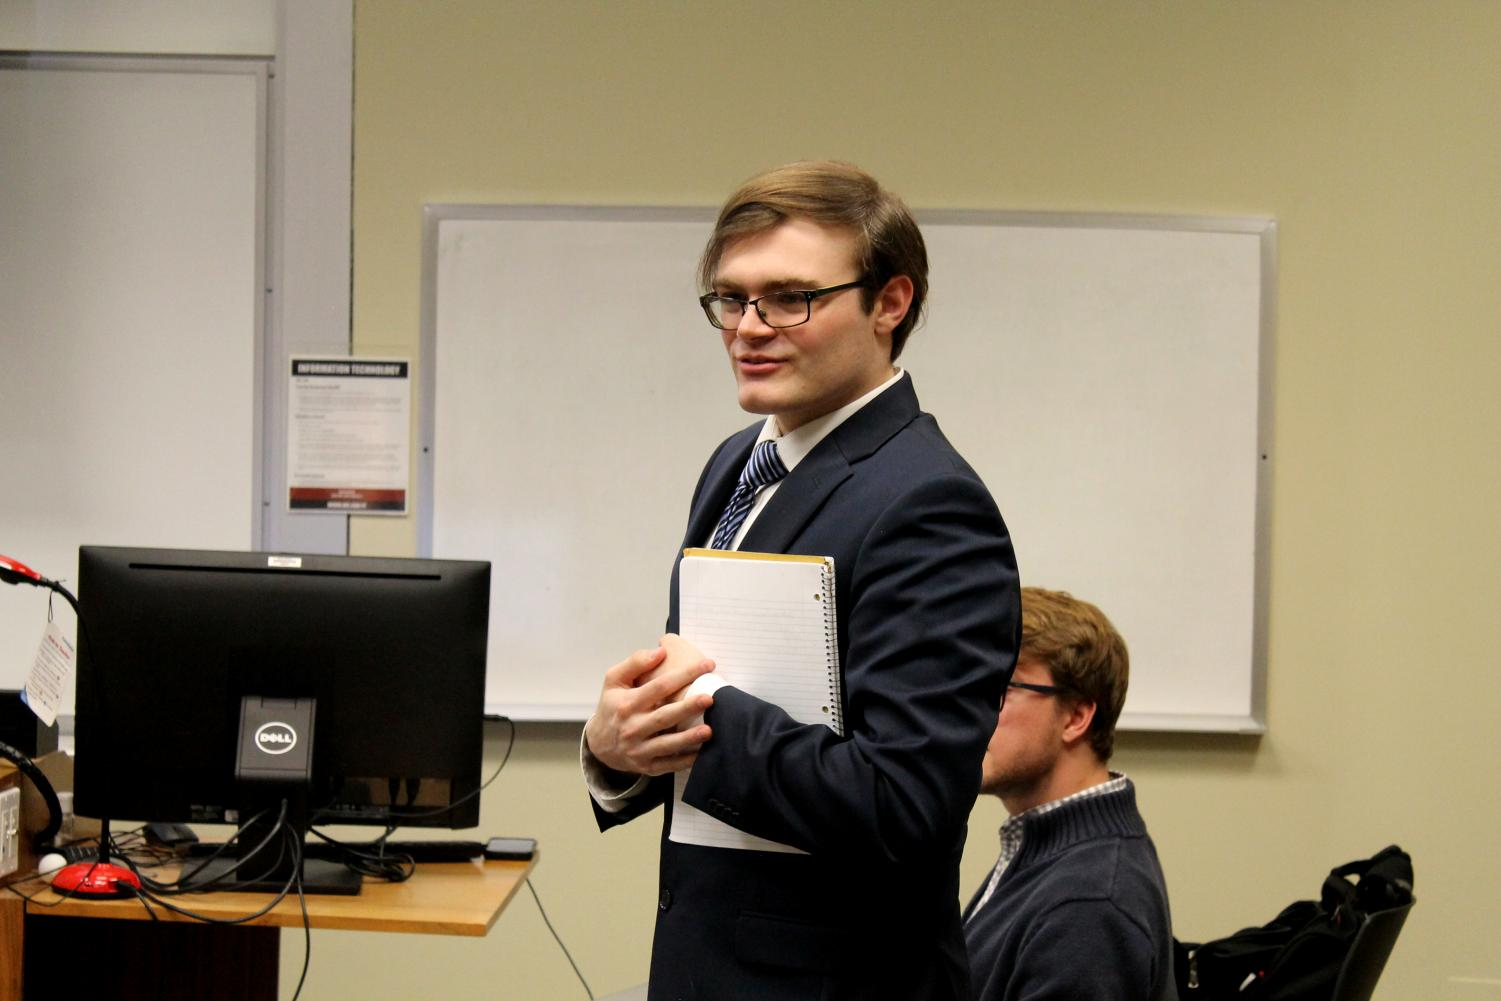 SGA President Grant Hill shares his officer report at the SGA's weekly meeting.